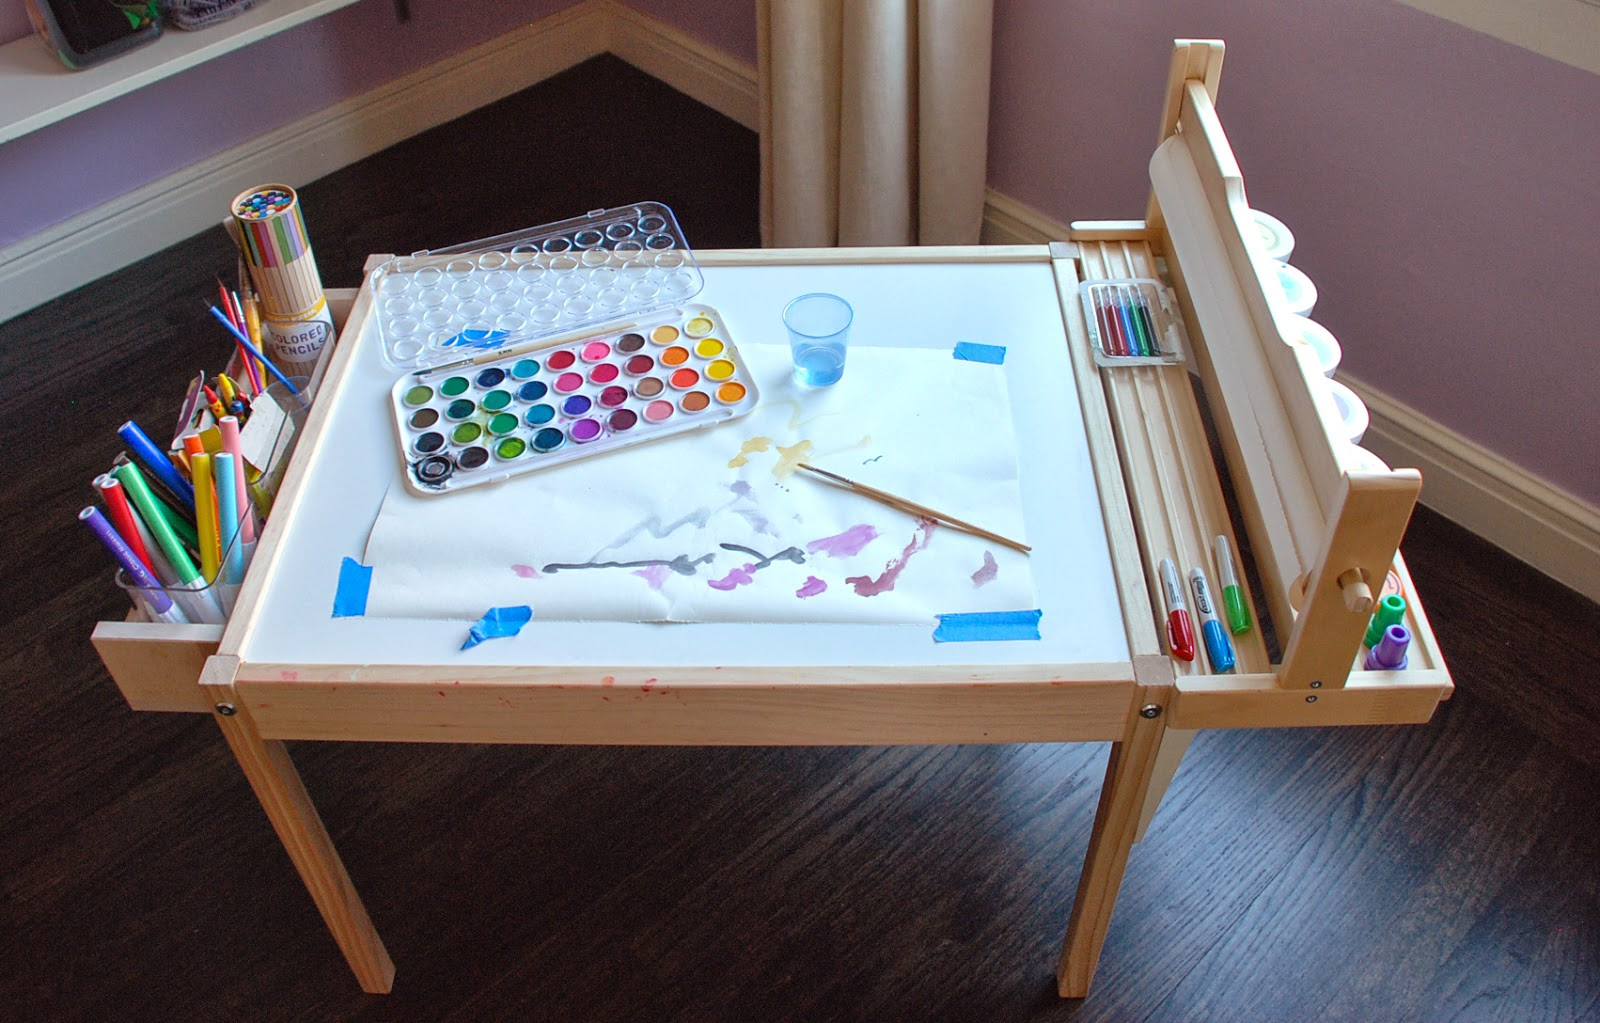 Best ideas about DIY Kids Craft Table . Save or Pin Design Ingenuity DIY Kids Craft Table Now.